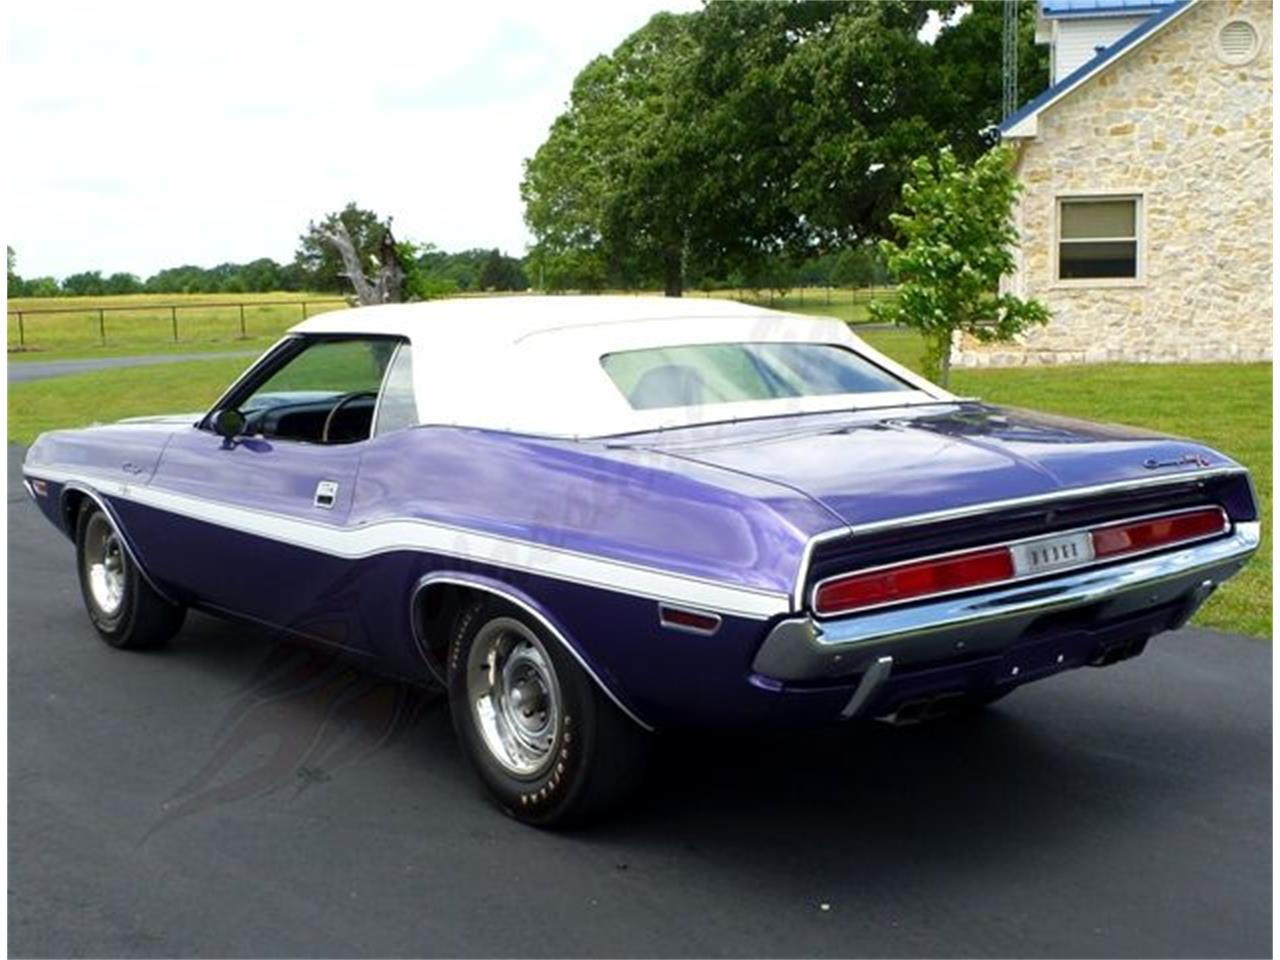 Large Picture of Classic 1970 Dodge Challenger R/T located in Texas - $189,500.00 - LTOP